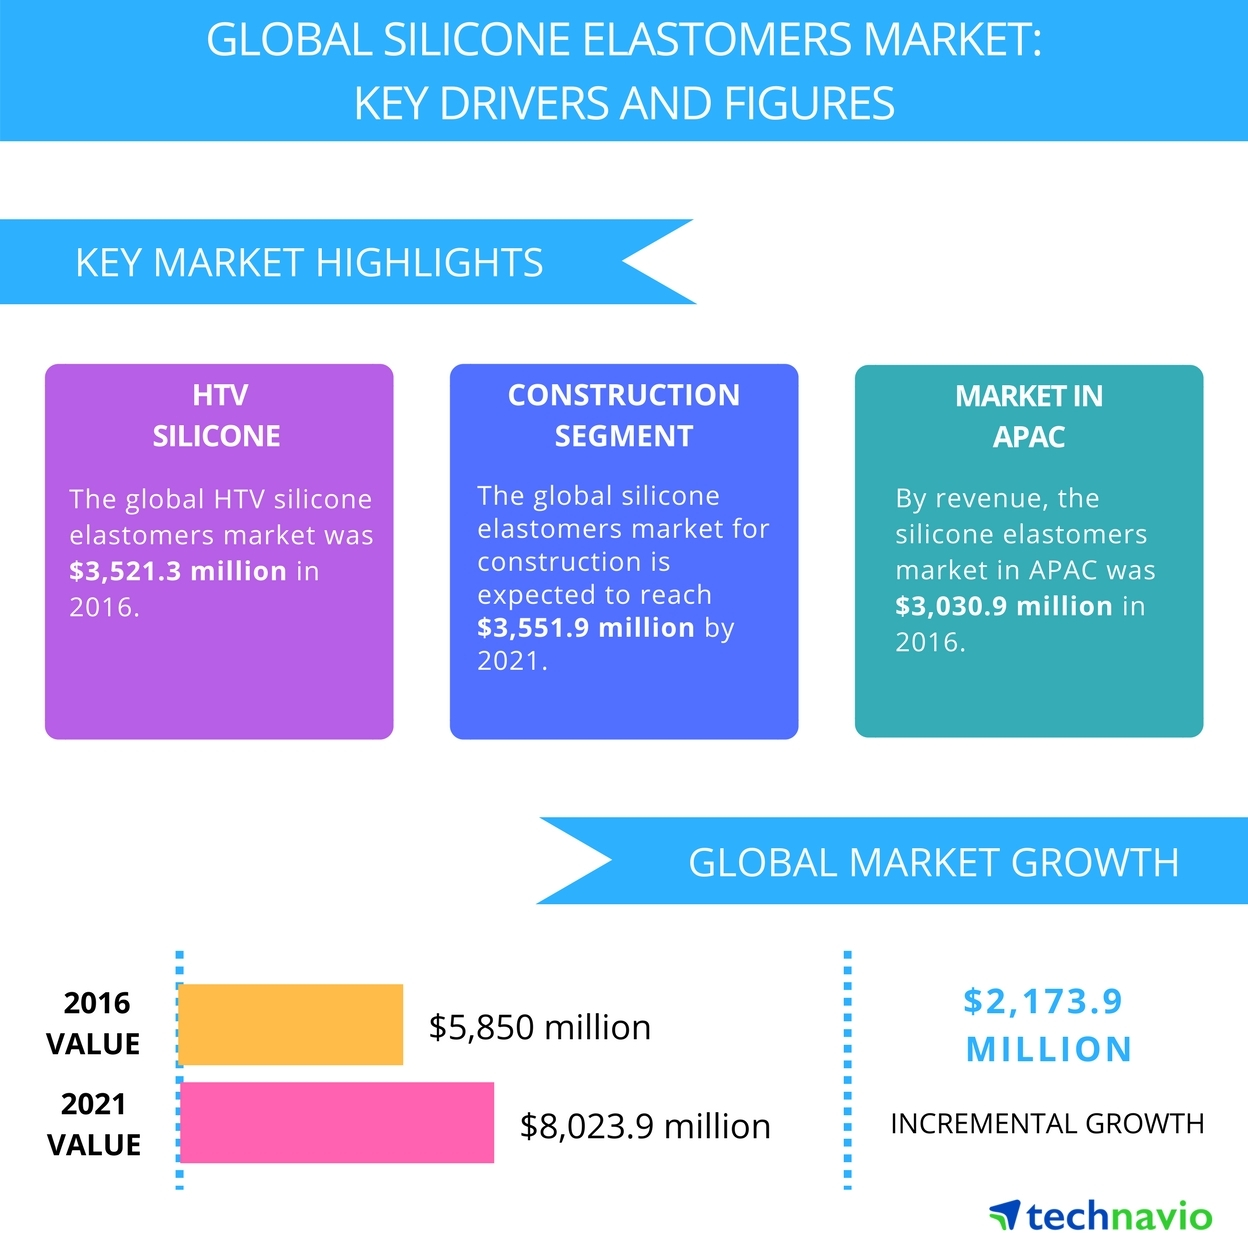 Top 5 Vendors in the Global Silicone Elastomers Market from 2017 to